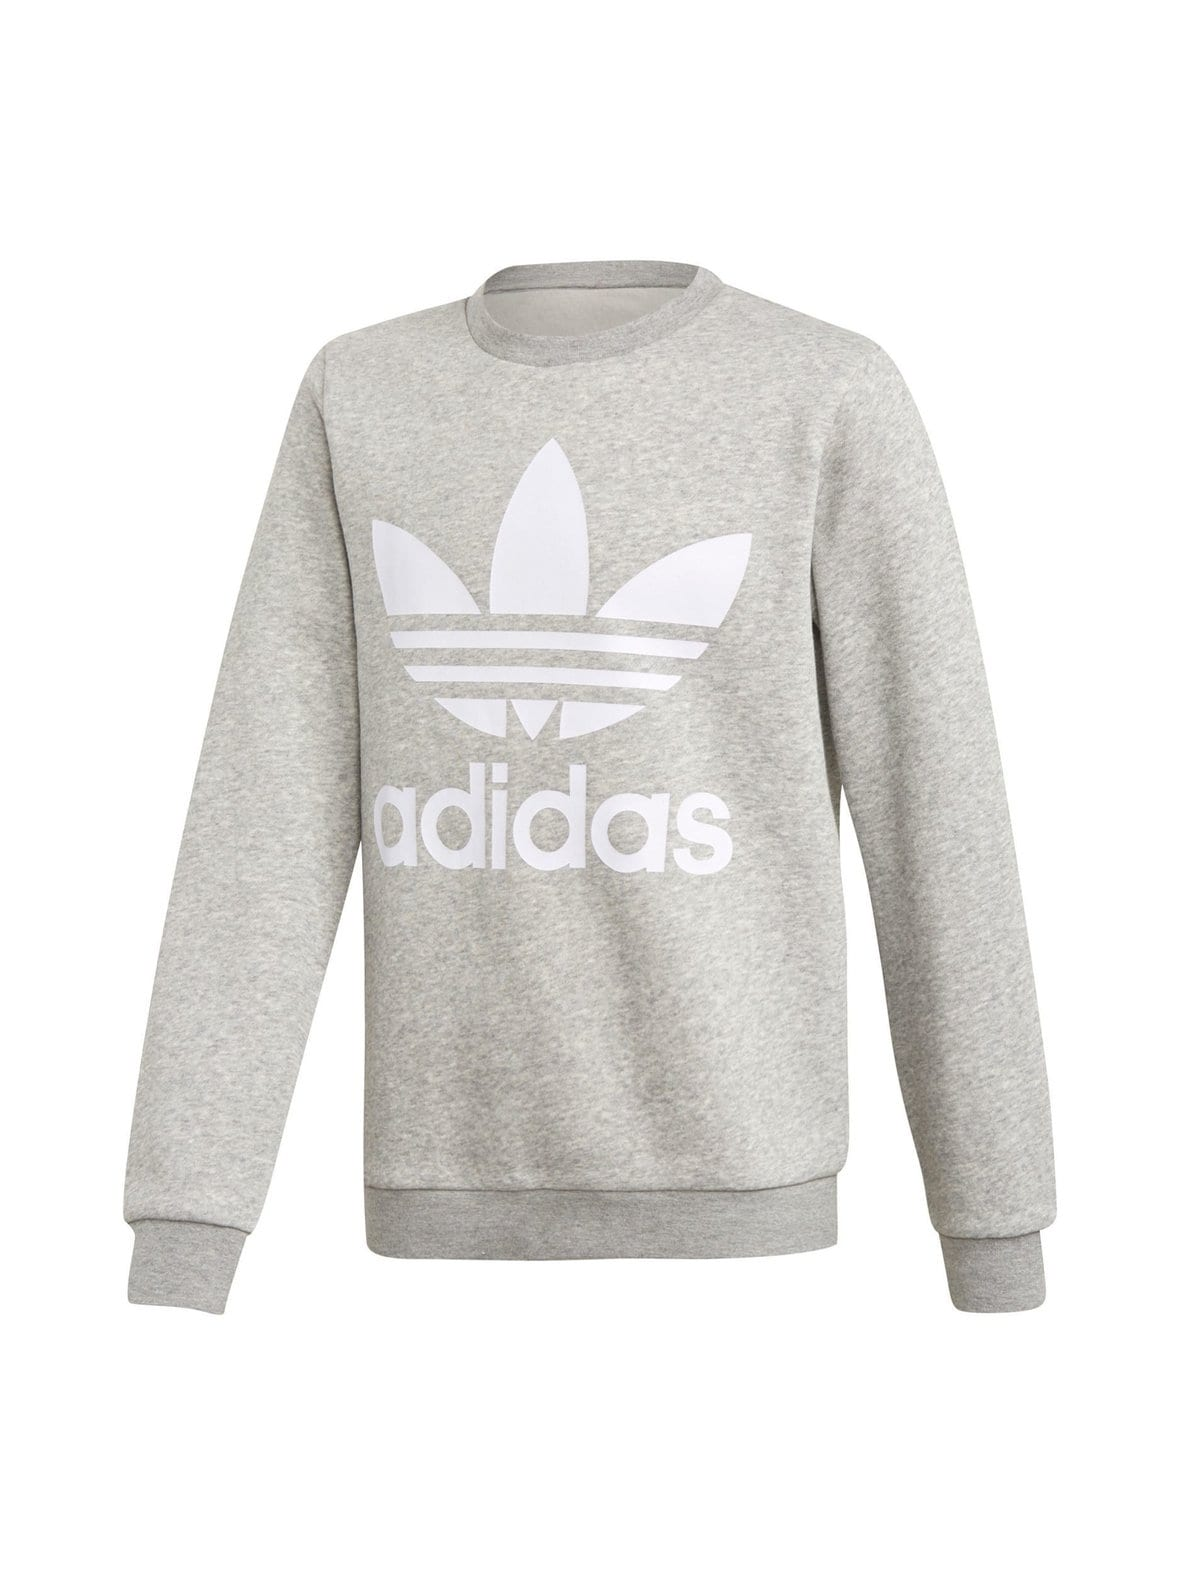 Grey (harmaa) Adidas Originals J W Crew -collegepaita DH2706  2e9fb6acad